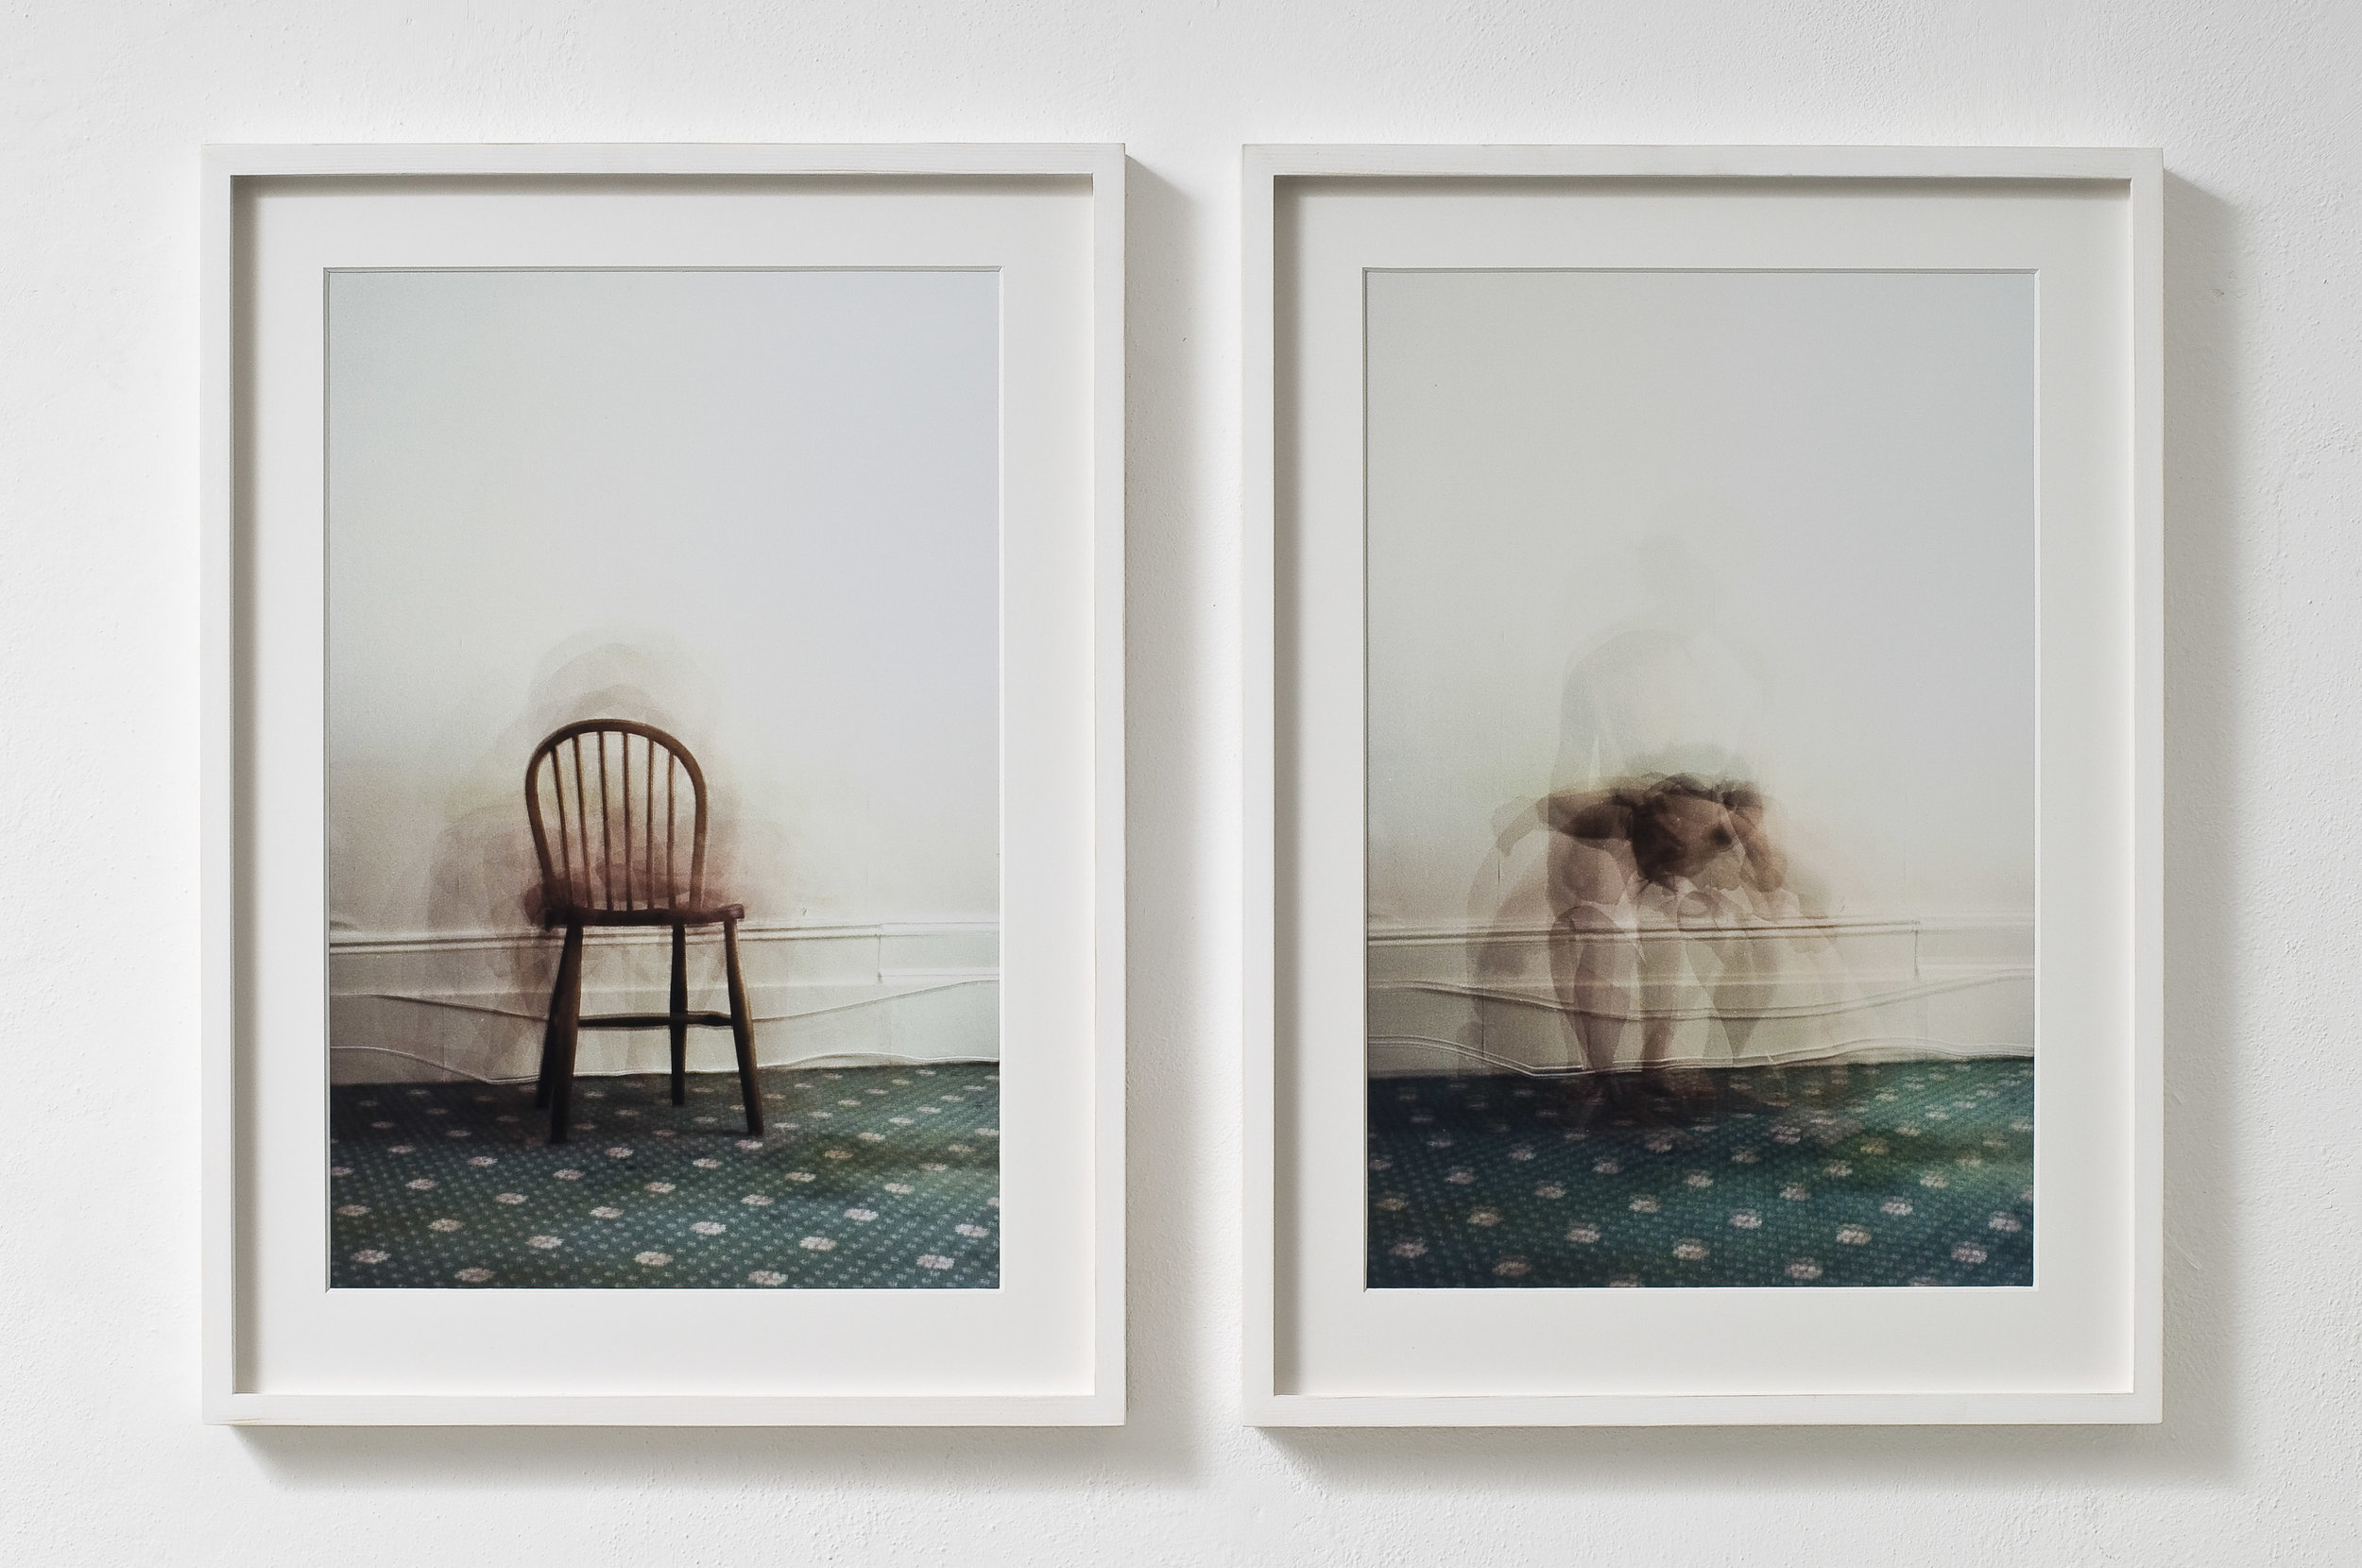 Chair 1 & Chair 3 (no chair)  C Print multiple exposure on 35mm 16 x 12 inches